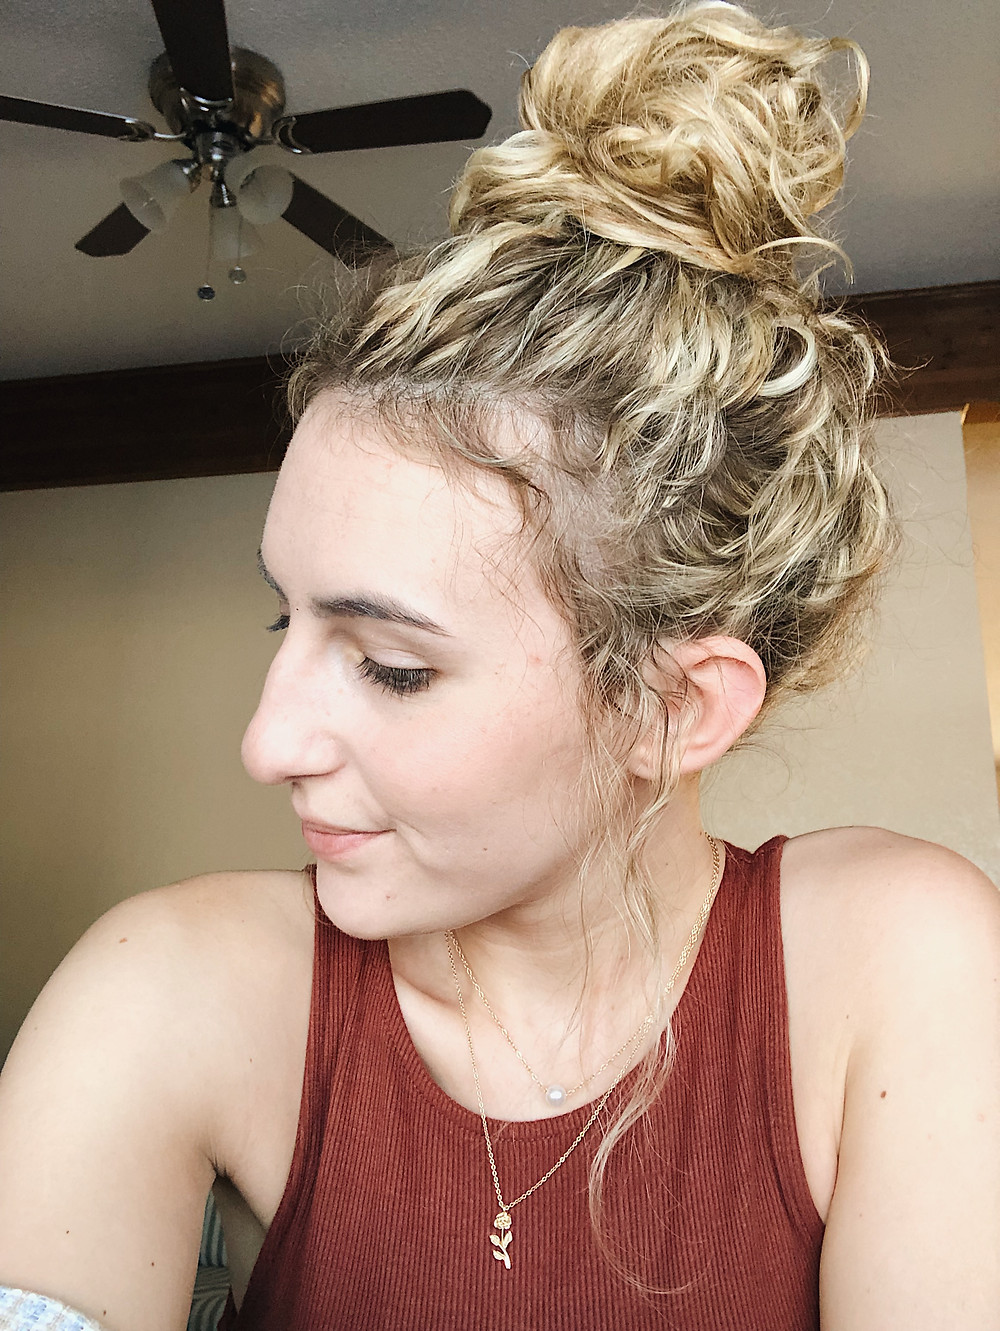 Abby Graf, The Bleached Curl, selfie